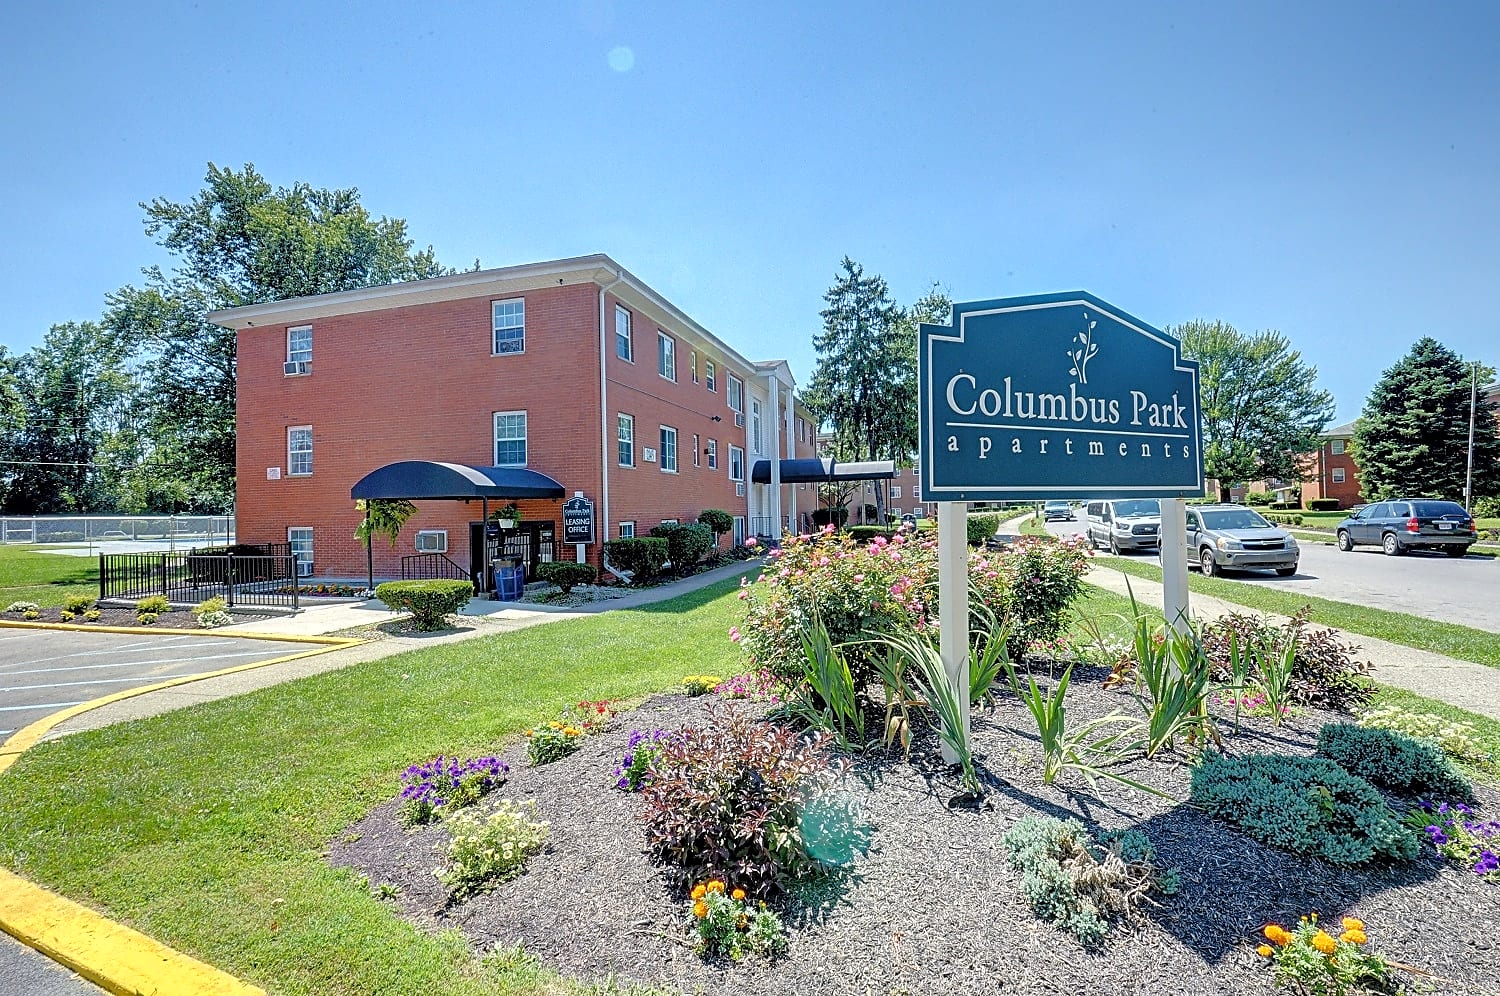 Columbus Park Apartments